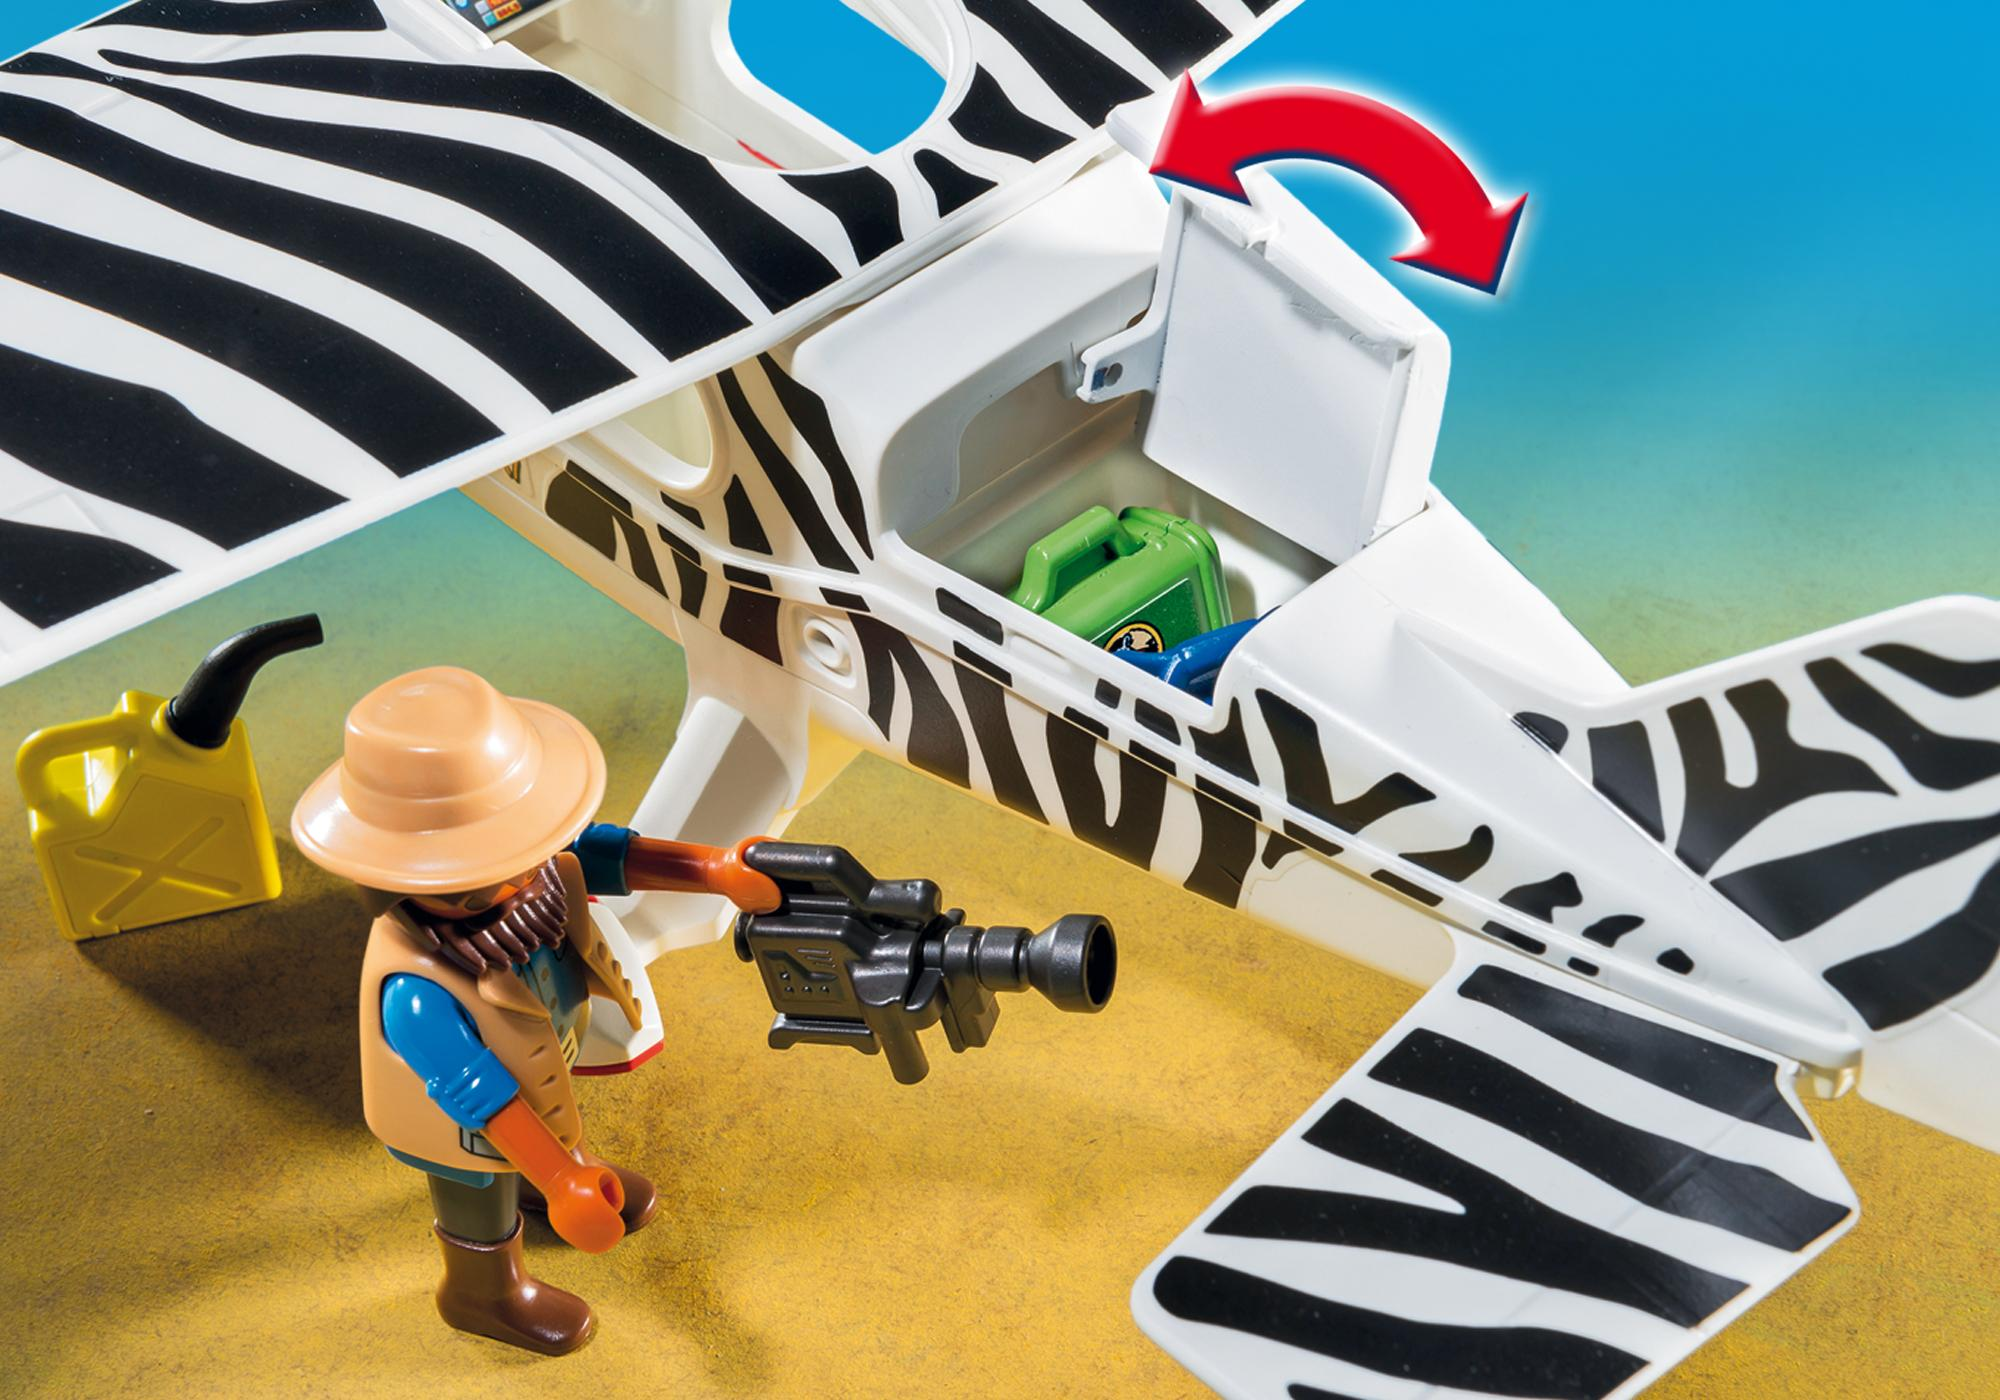 http://media.playmobil.com/i/playmobil/6938_product_extra1/Safari-Flugzeug